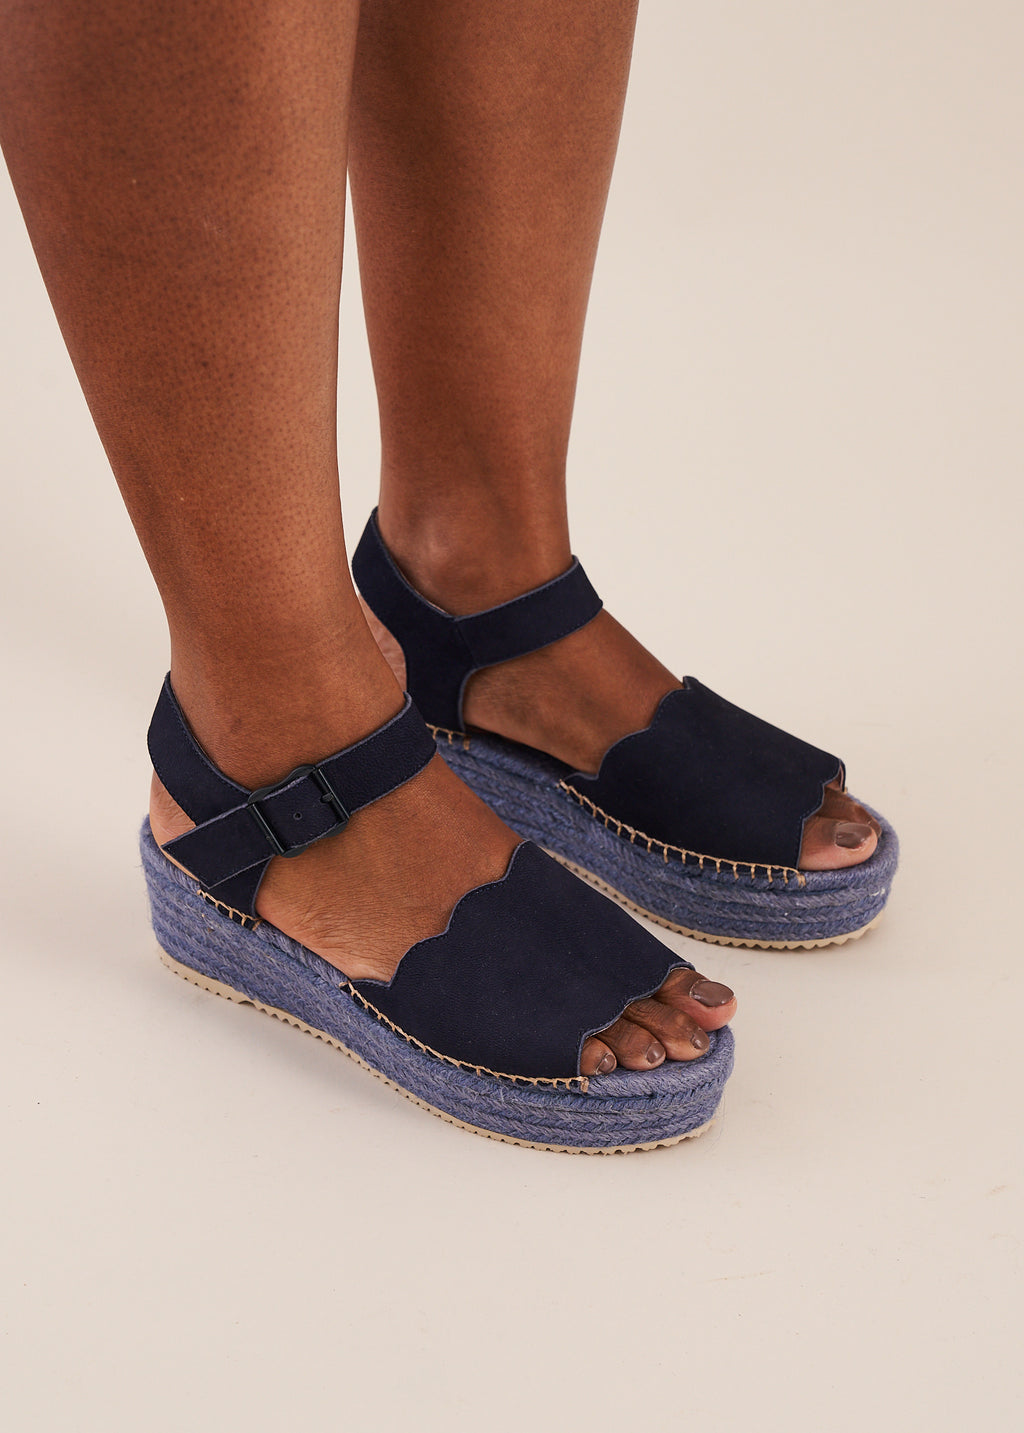 Esther in navy blue is a super comfortable low flatform espadrille wedge by designer Miss L Fire. Limited edition, ethically made.